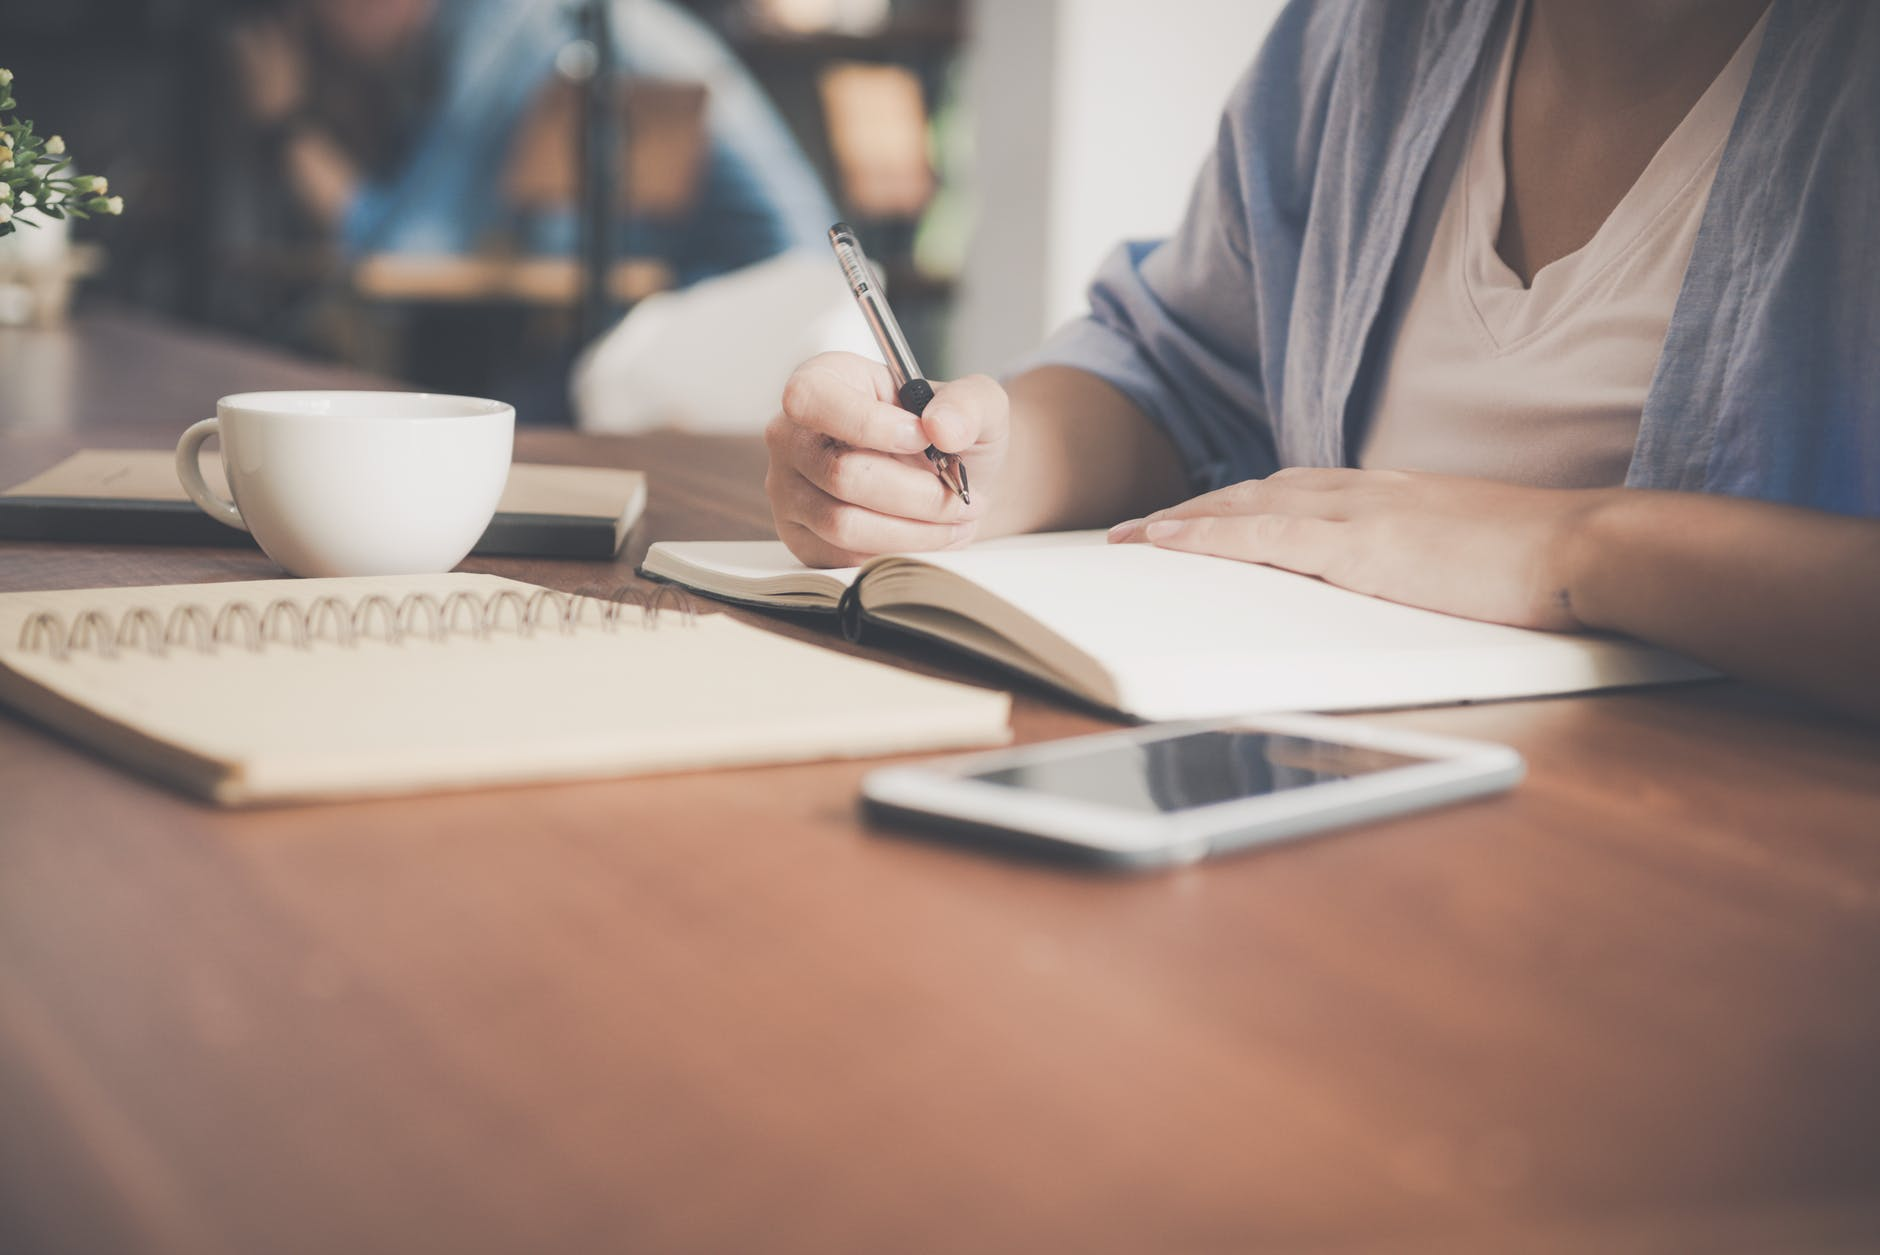 A woman writes in a notebook, with a coffee next to her.